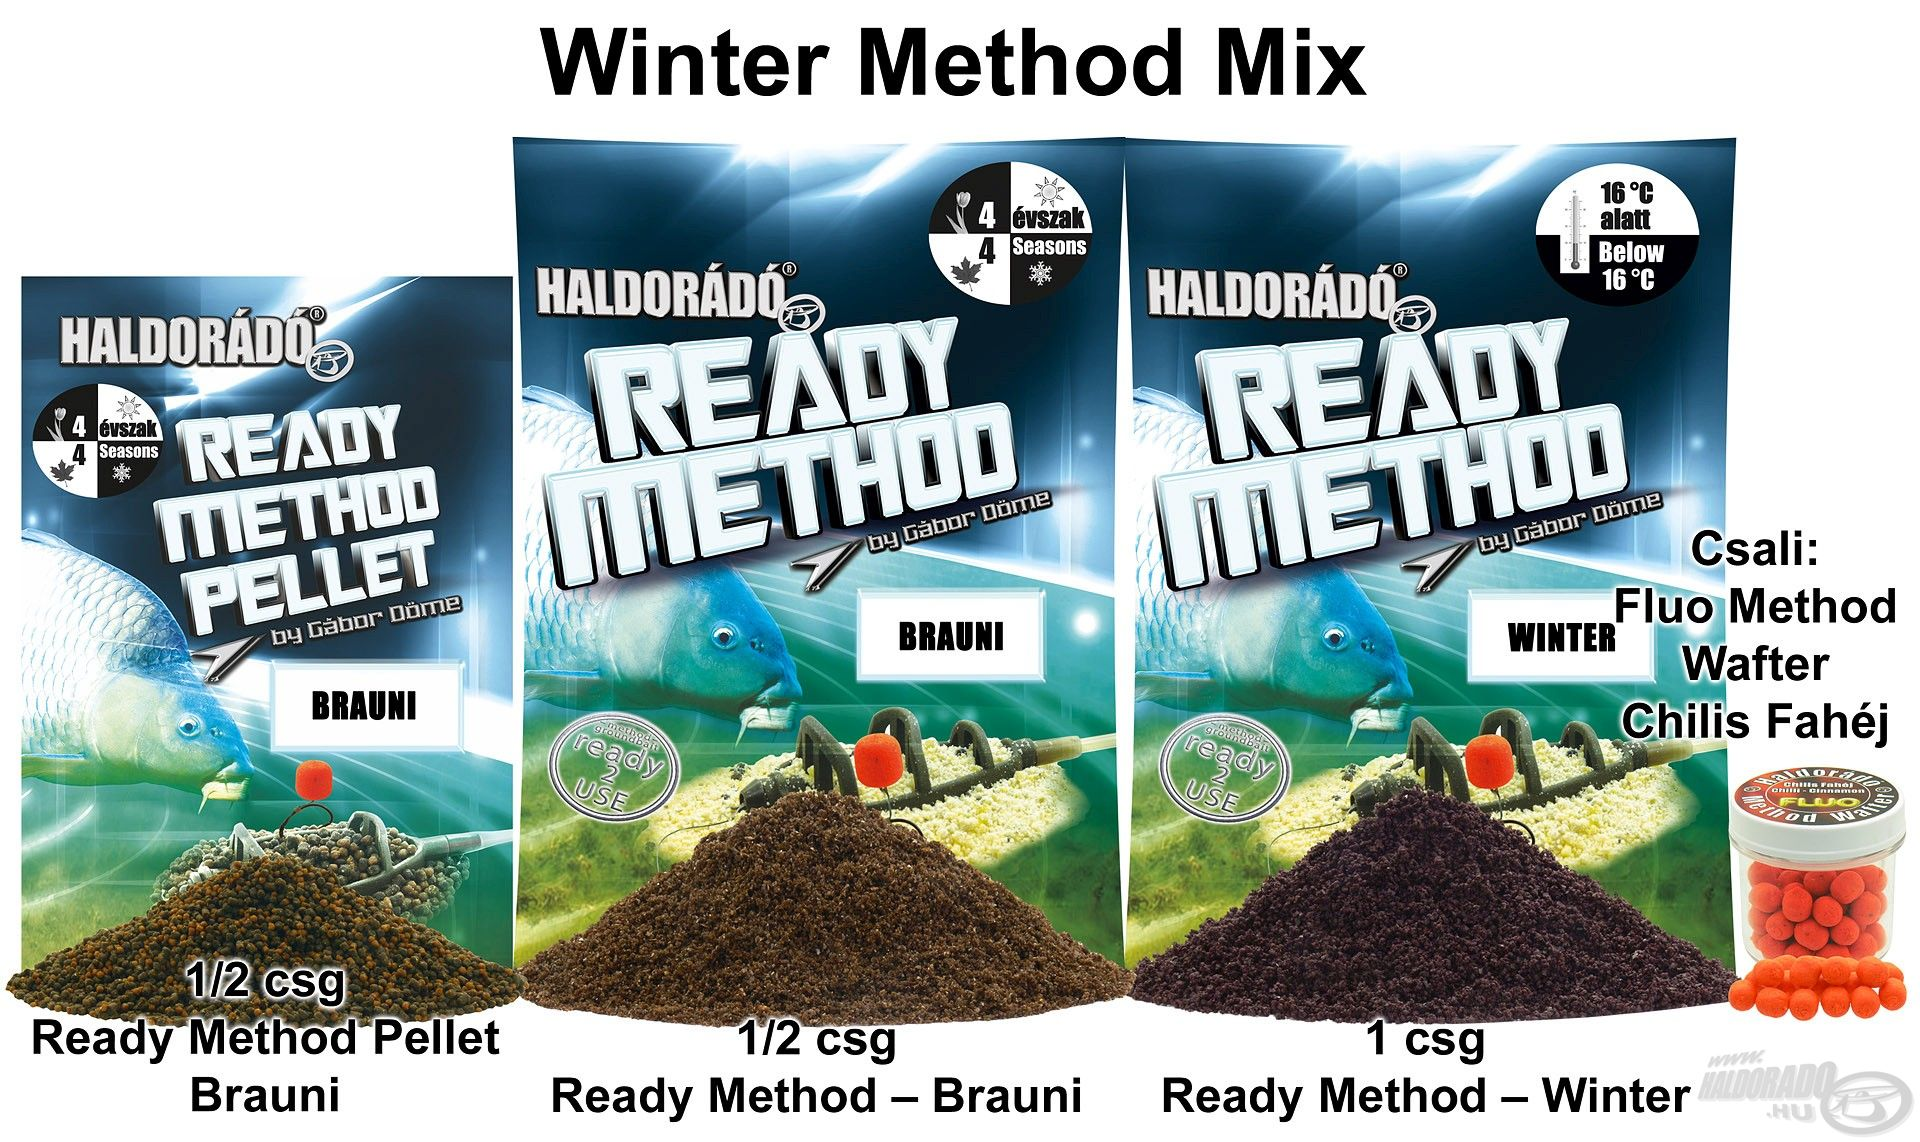 Winter Method Mix